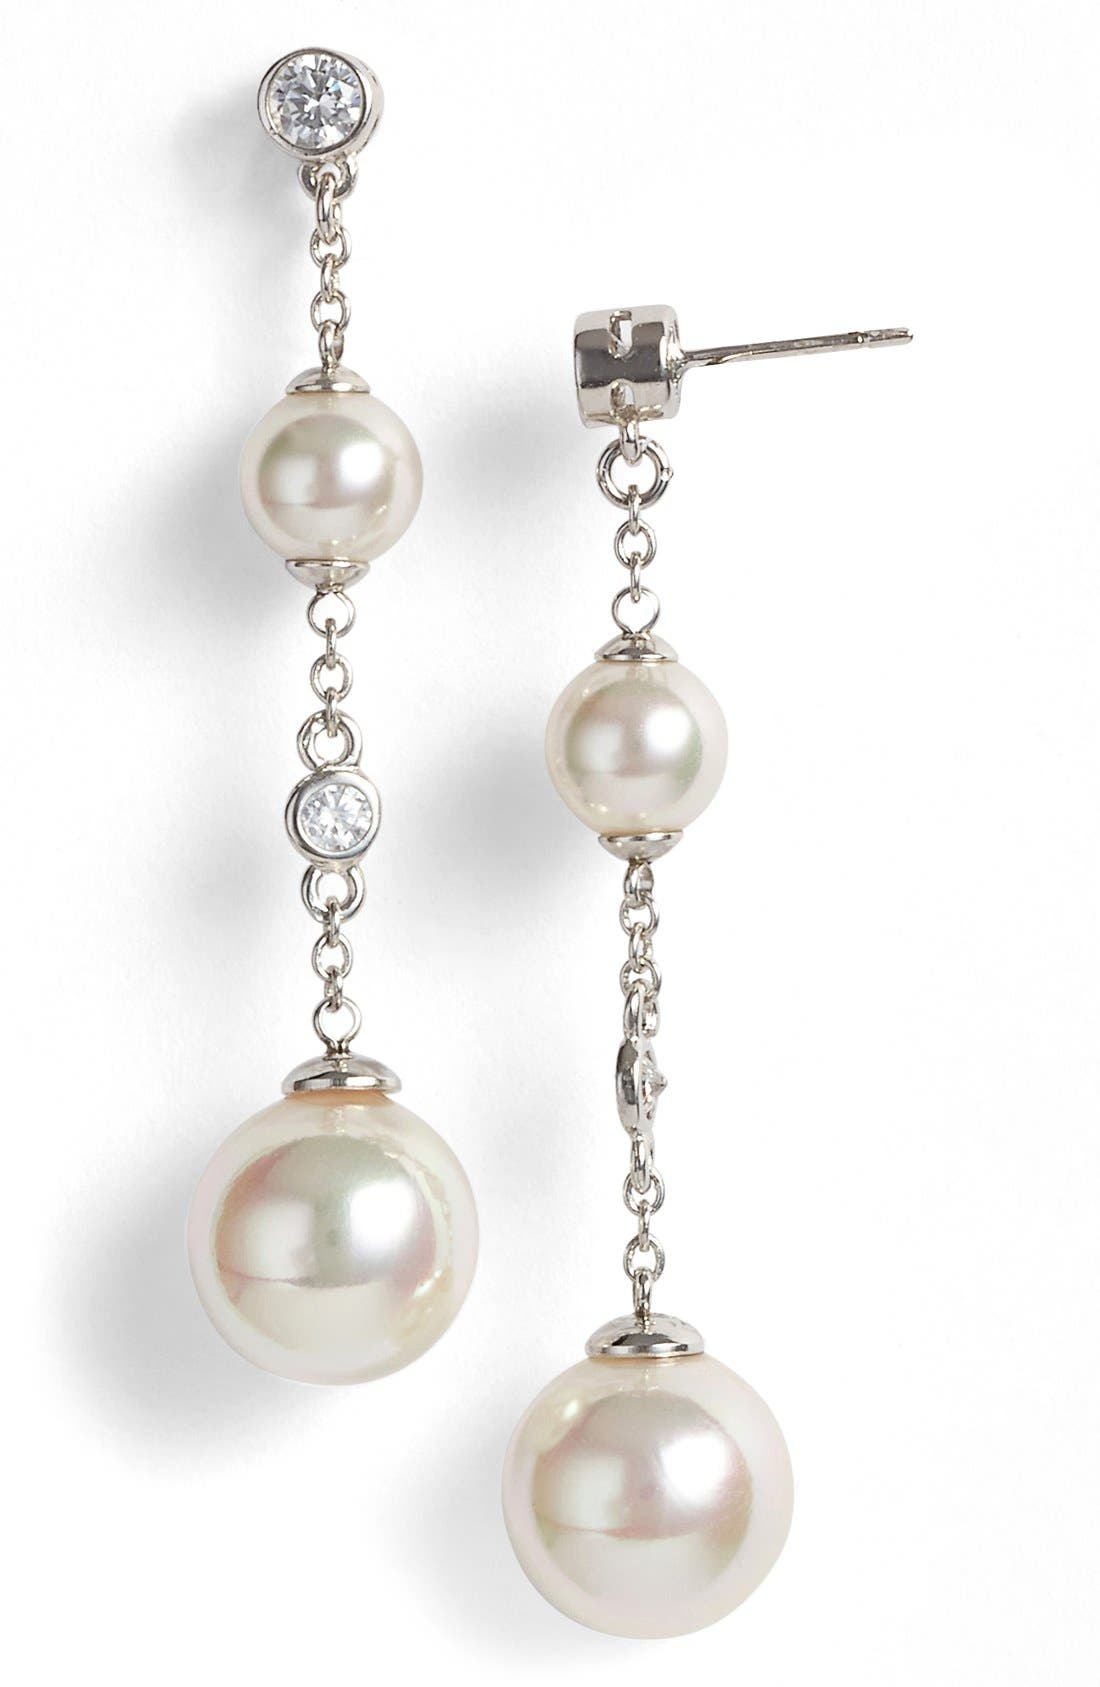 Majorica Pearl & Cubic Zirconia Linear Earrings